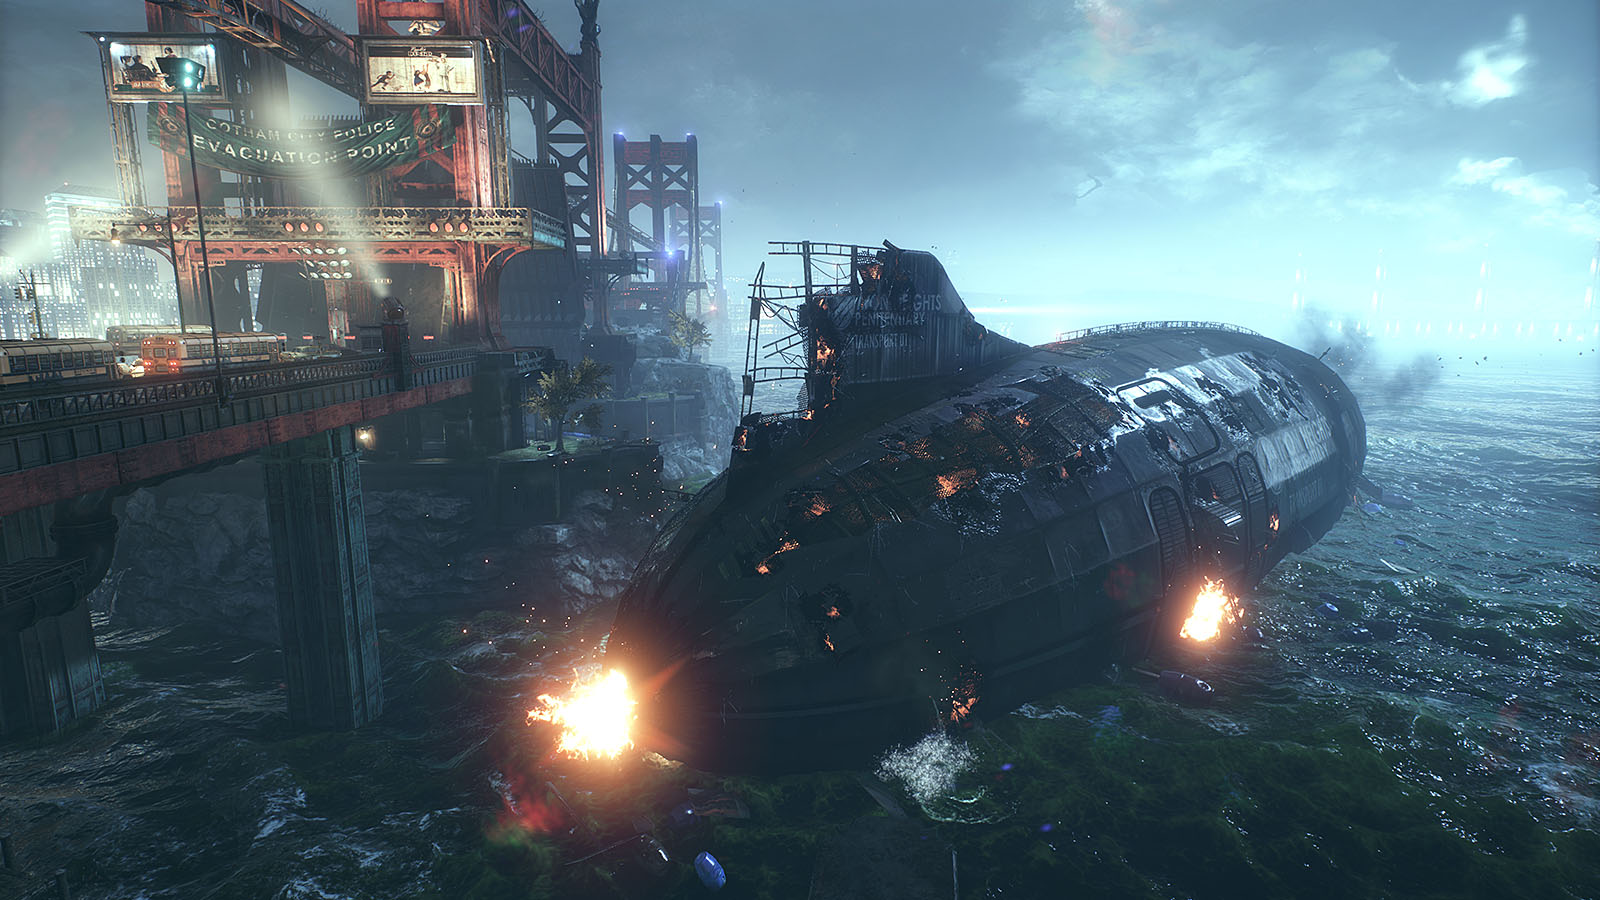 batman arkham knight dlc iron height penitentiary airship